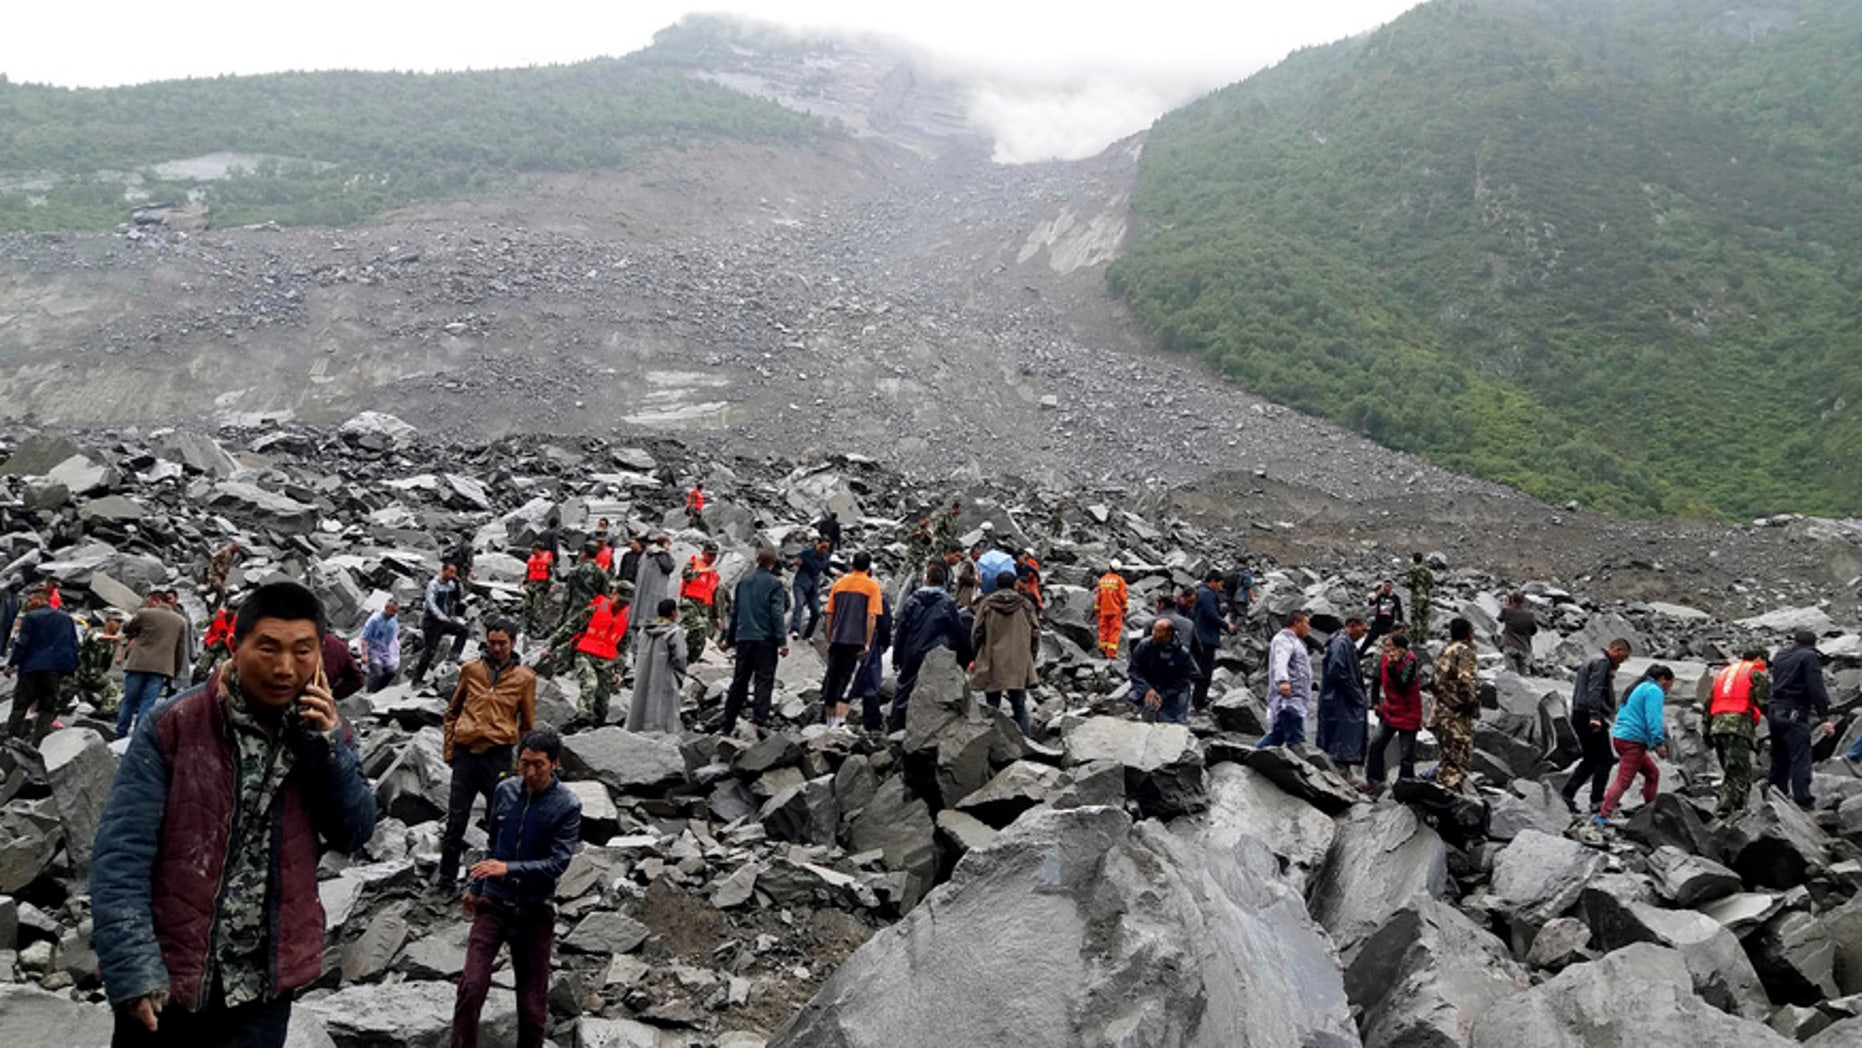 FILE: Emergency personnel work at the site of a landslide in Xinmo village in Maoxian County in southwestern China's Sichuan Province